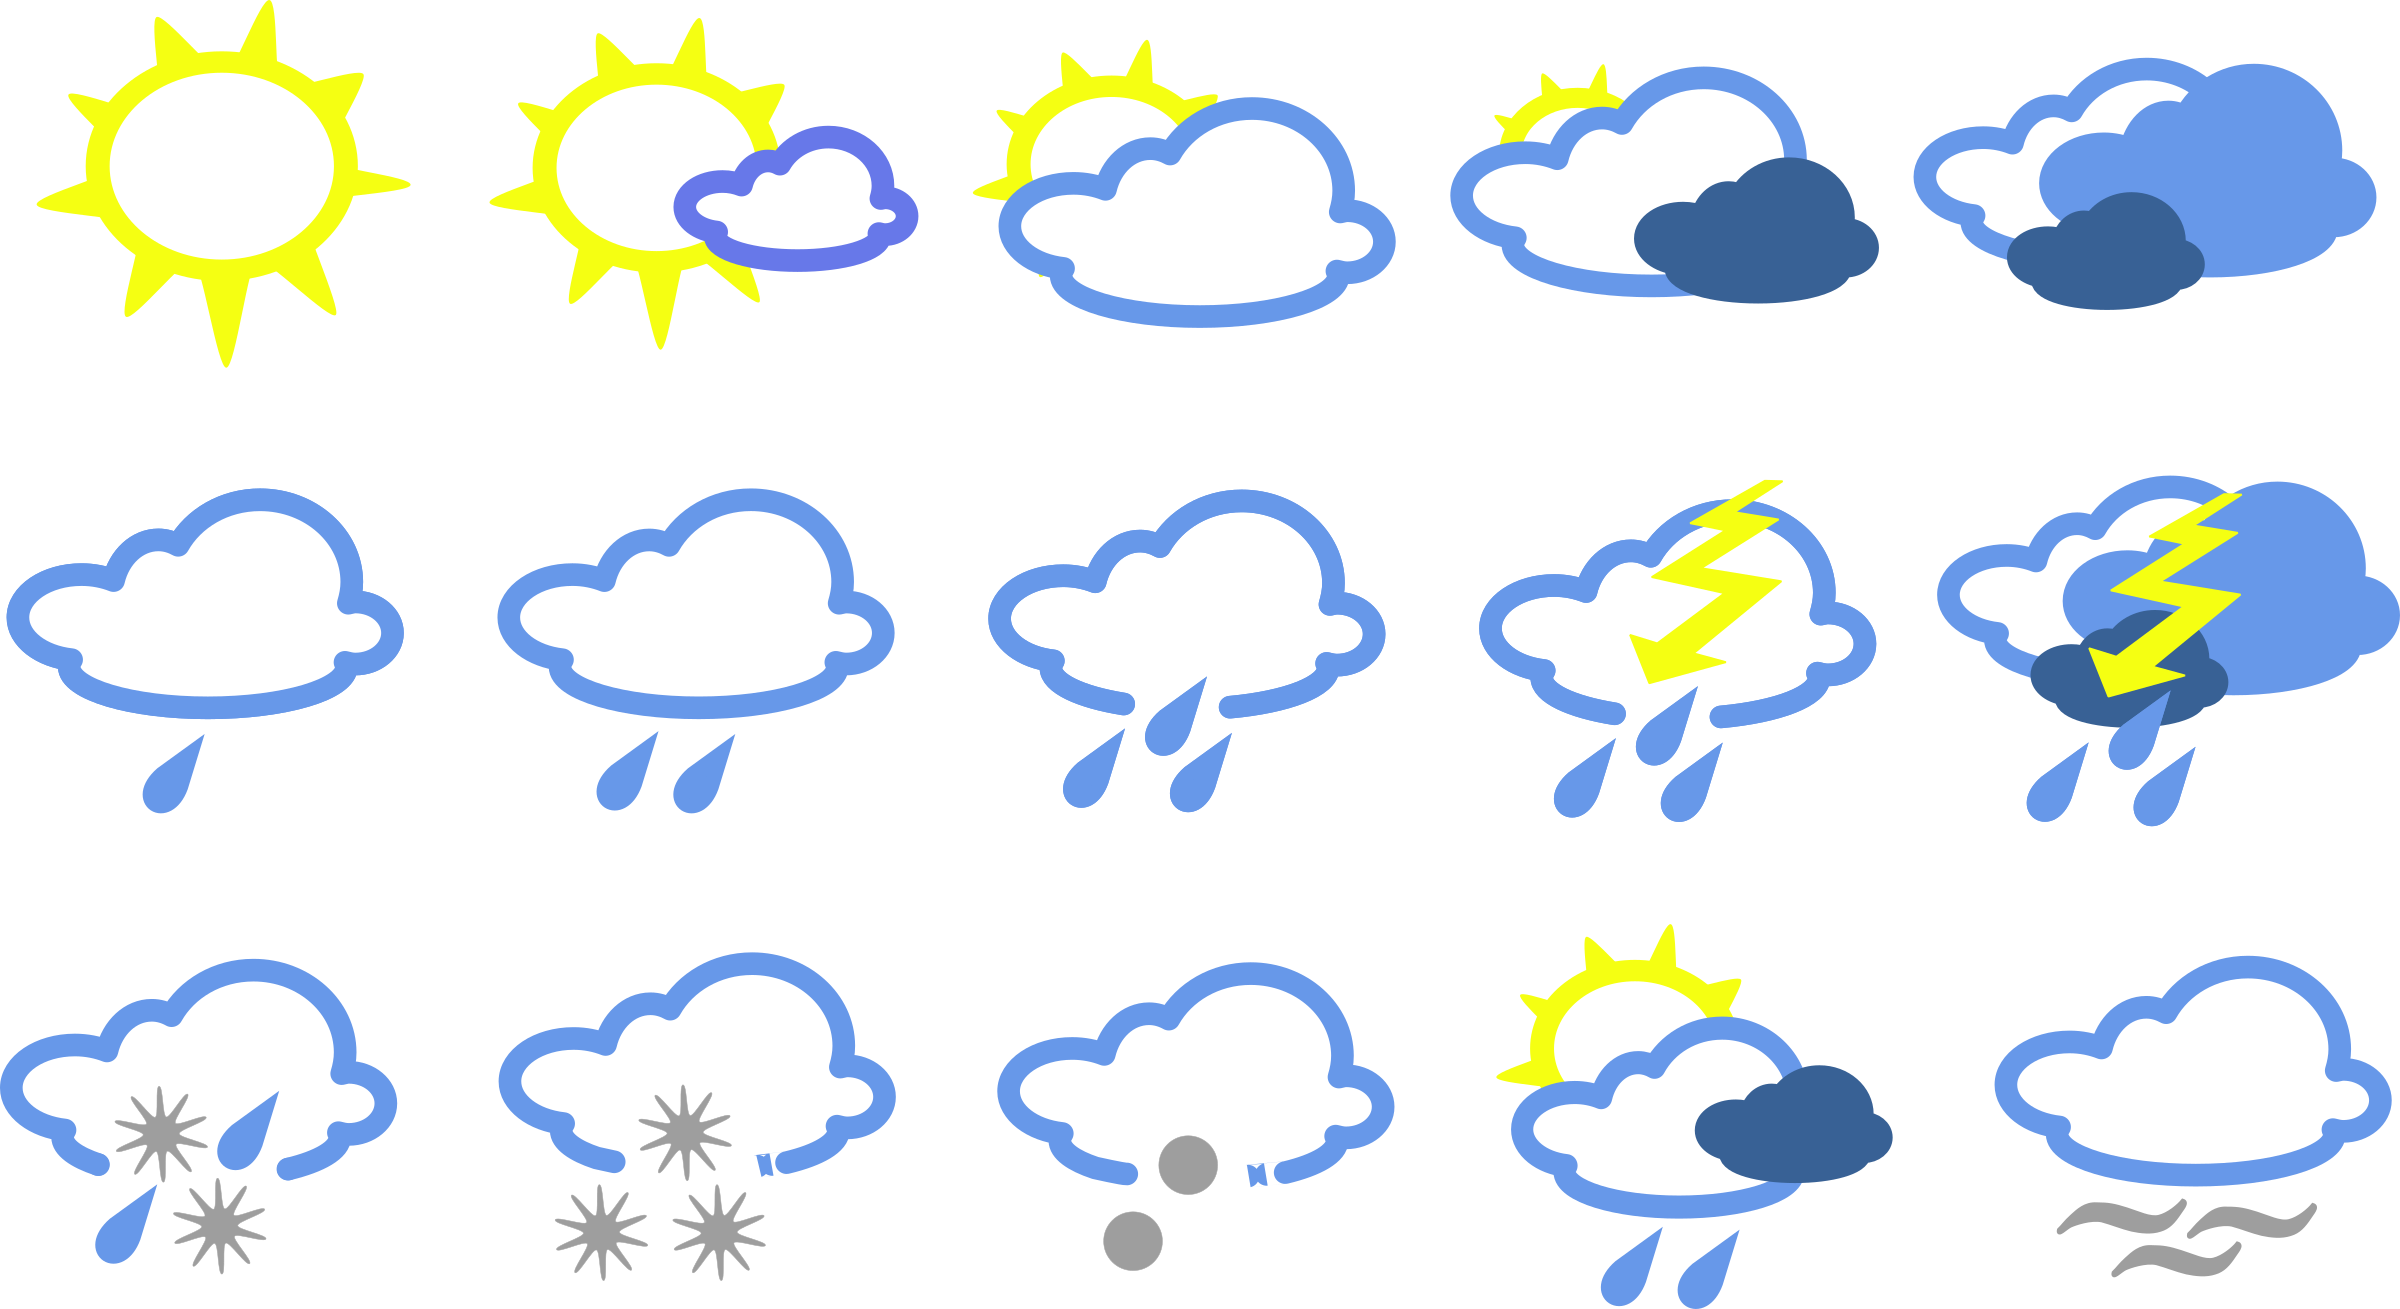 graphic black and white download Simple weather symbols big. Snowy clipart misty.